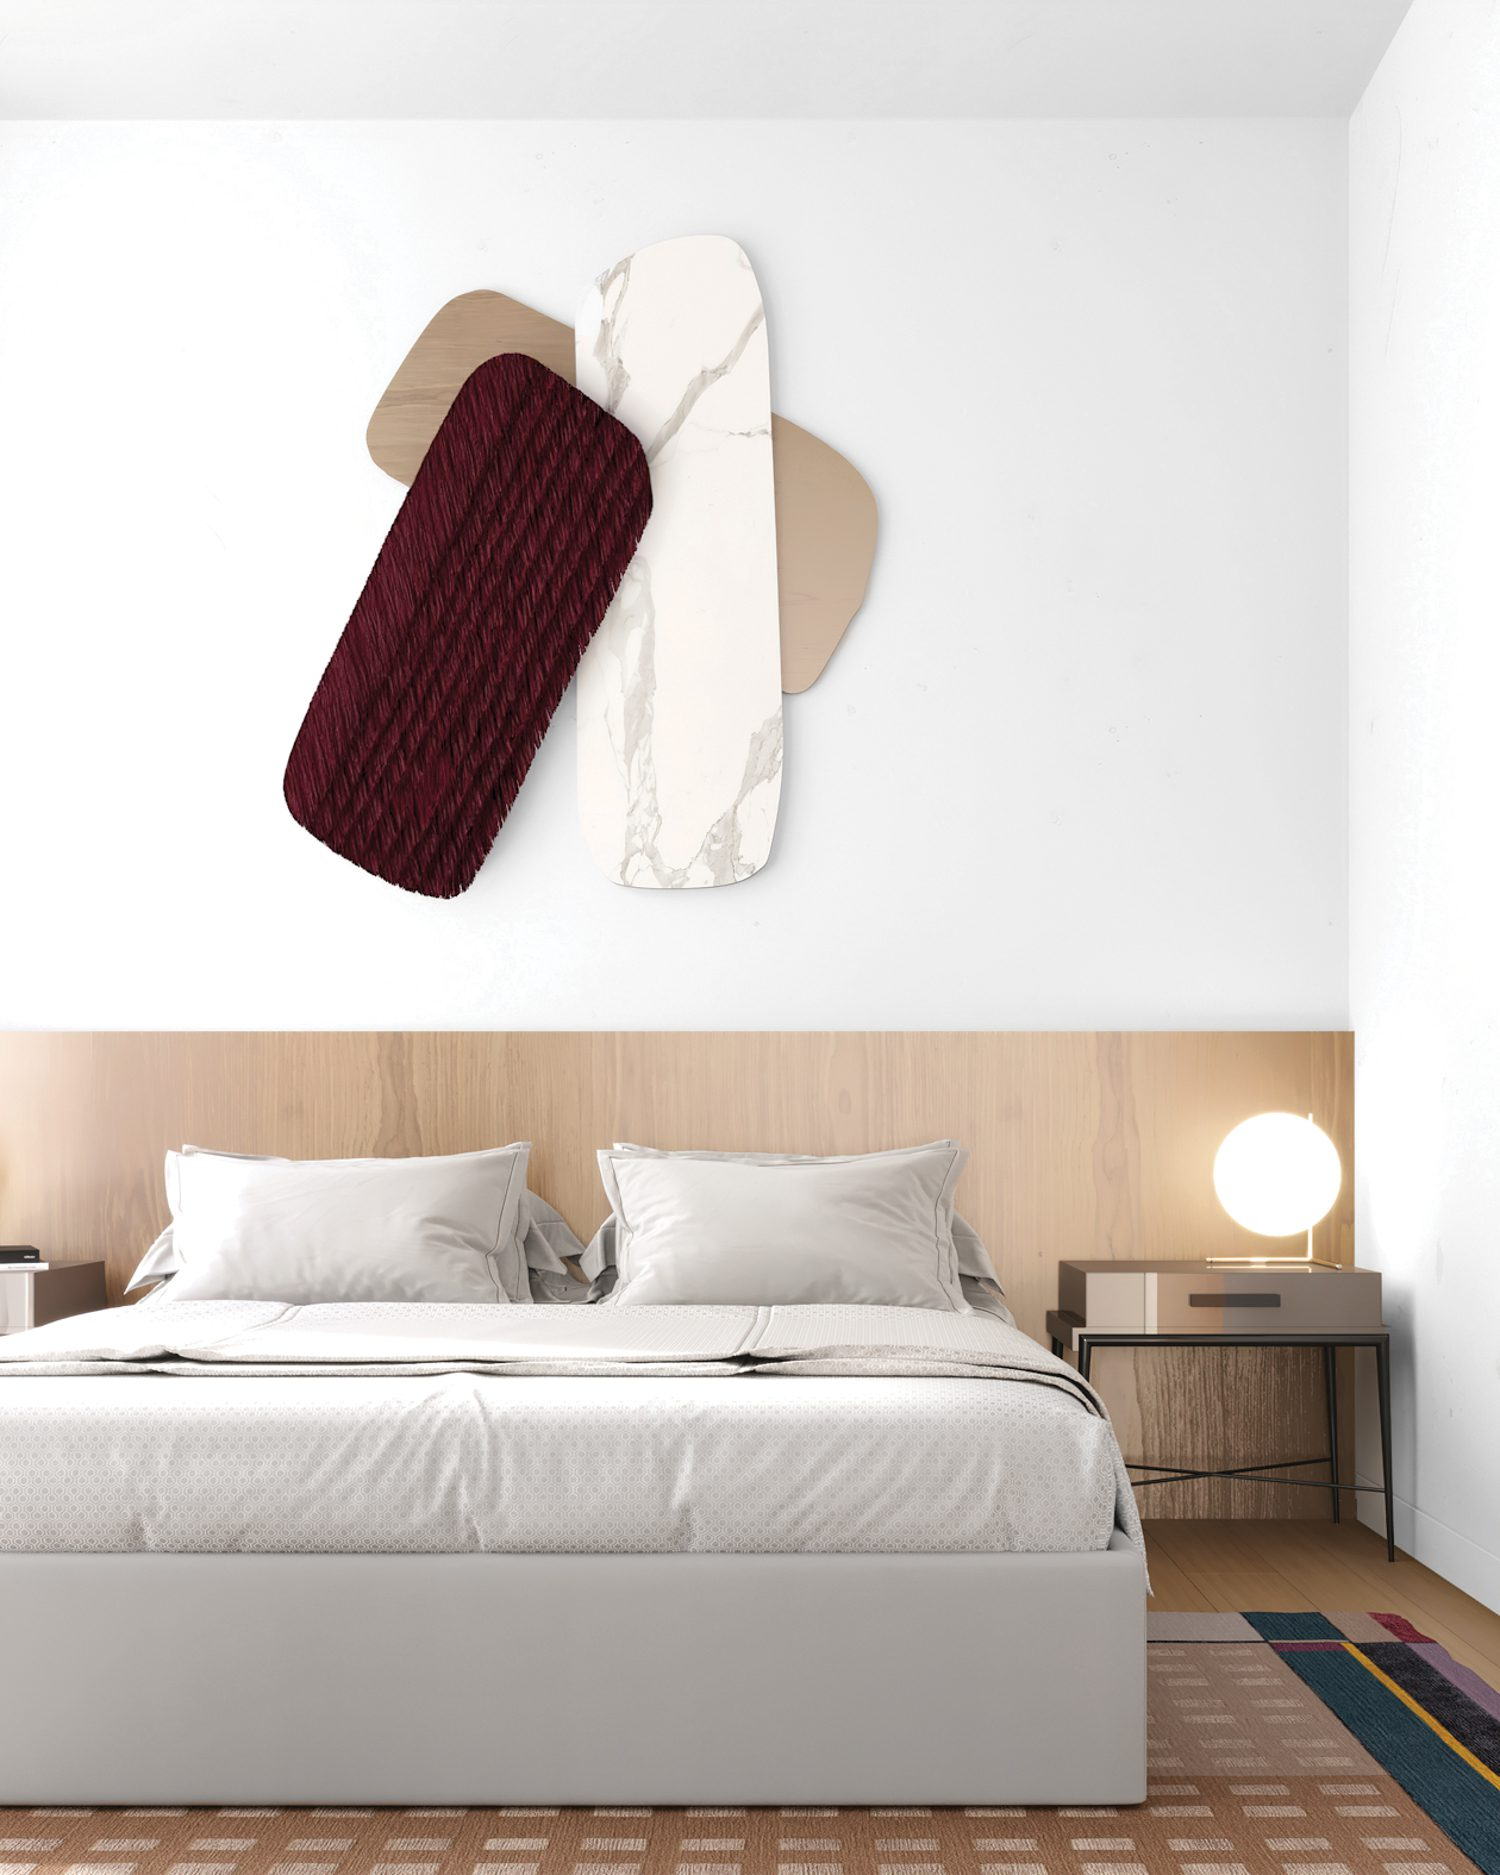 Natalia Enze designed the bed and nightstand and commissioned the wall sculpture in Carrara marble, oak, andmahogany.